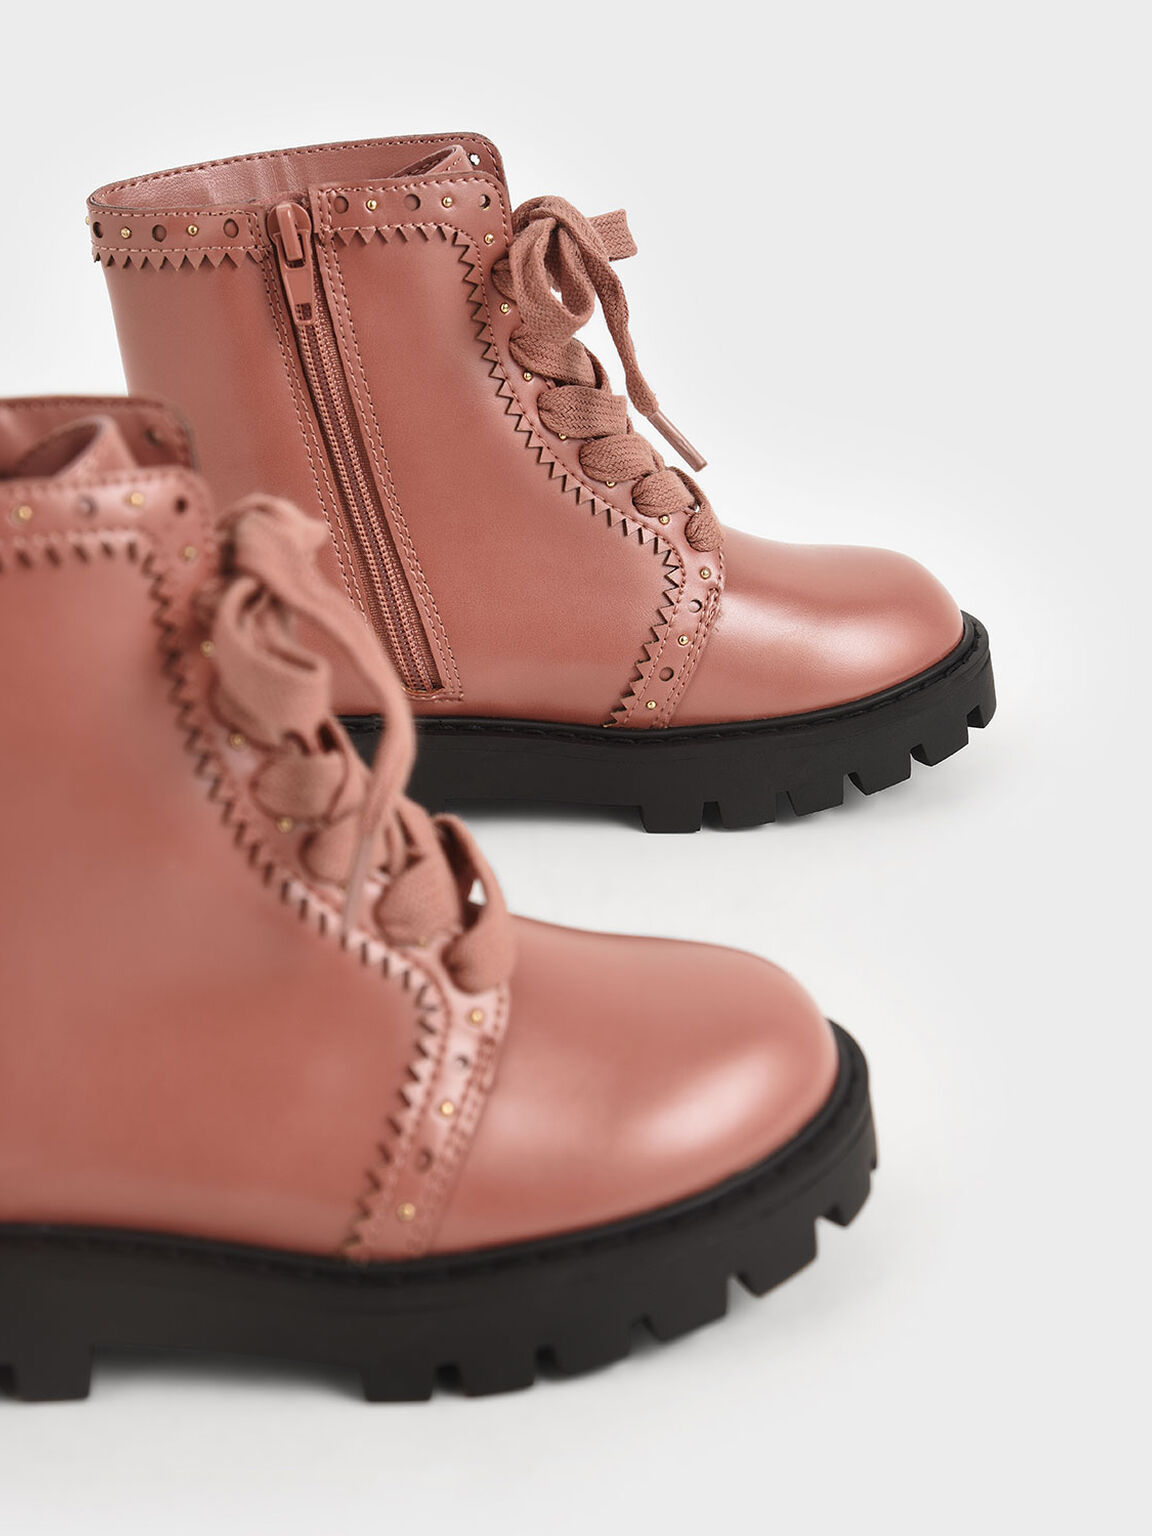 Girls' Studded Lace-Up Ankle Boots, Pink, hi-res